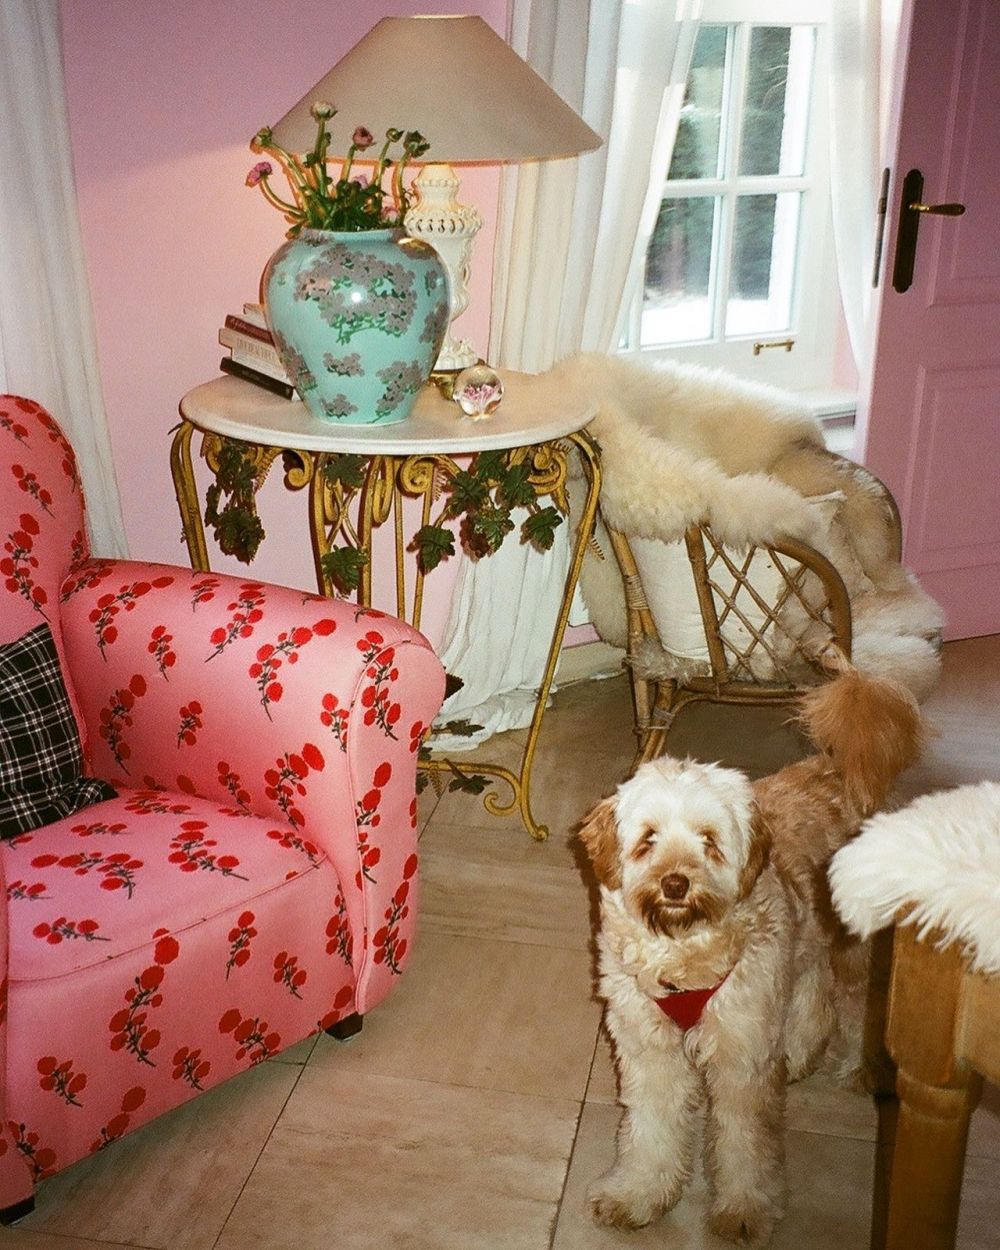 Maurice, the Red Blossom couch and Mint Hortensia vase in the Pink room. 🏡 ~ Countdown for the vases to drop in stores! Almost! 🤍